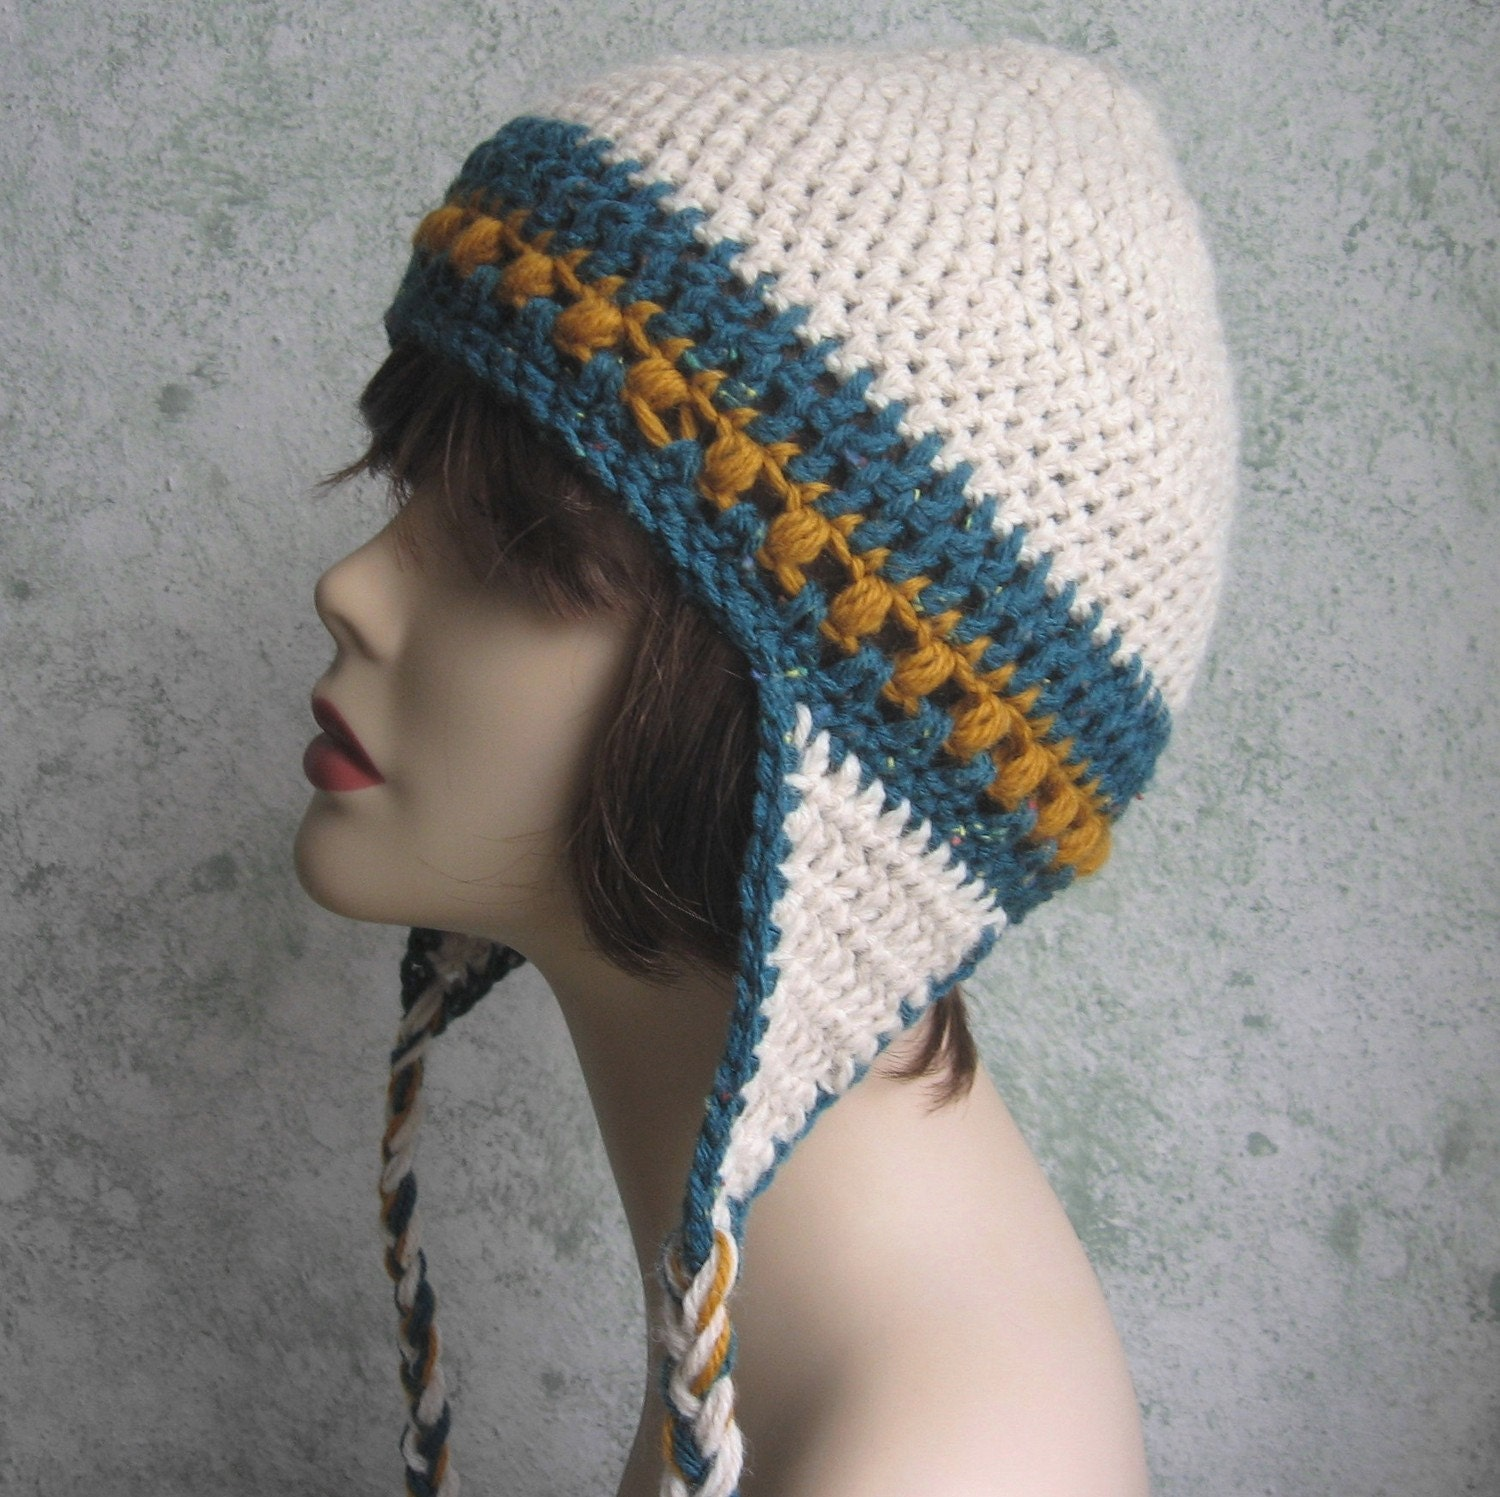 Crochet Womens Hat With Ear Flaps Pattern : Items similar to Womens Crochet Hat Pattern With Earflaps ...